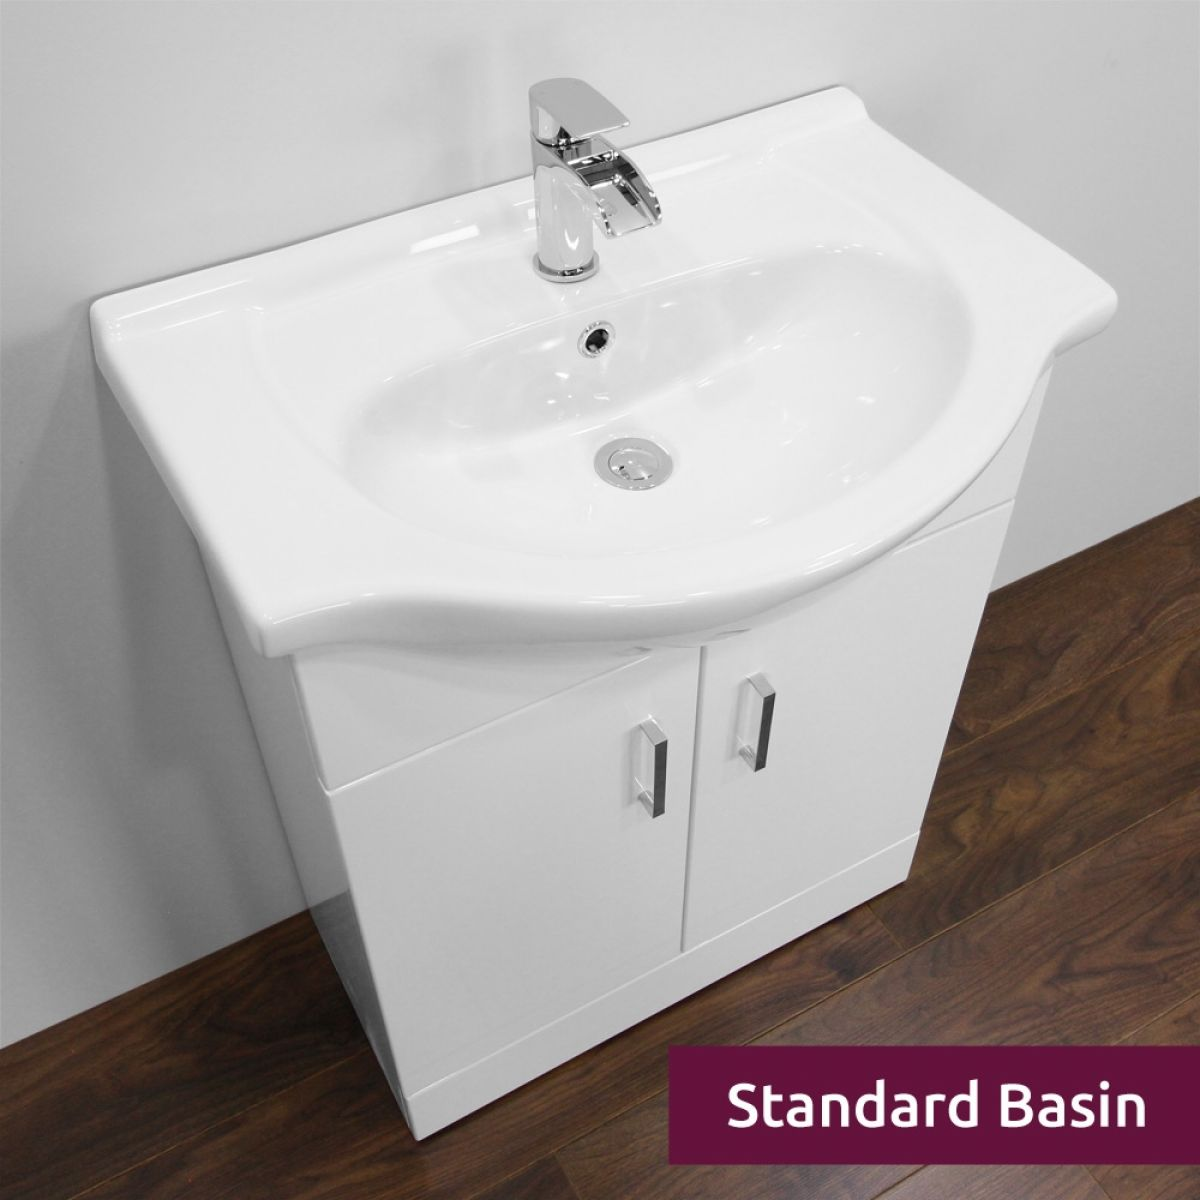 Premier High Gloss White Vanity Unit 650mm with Standard Basin